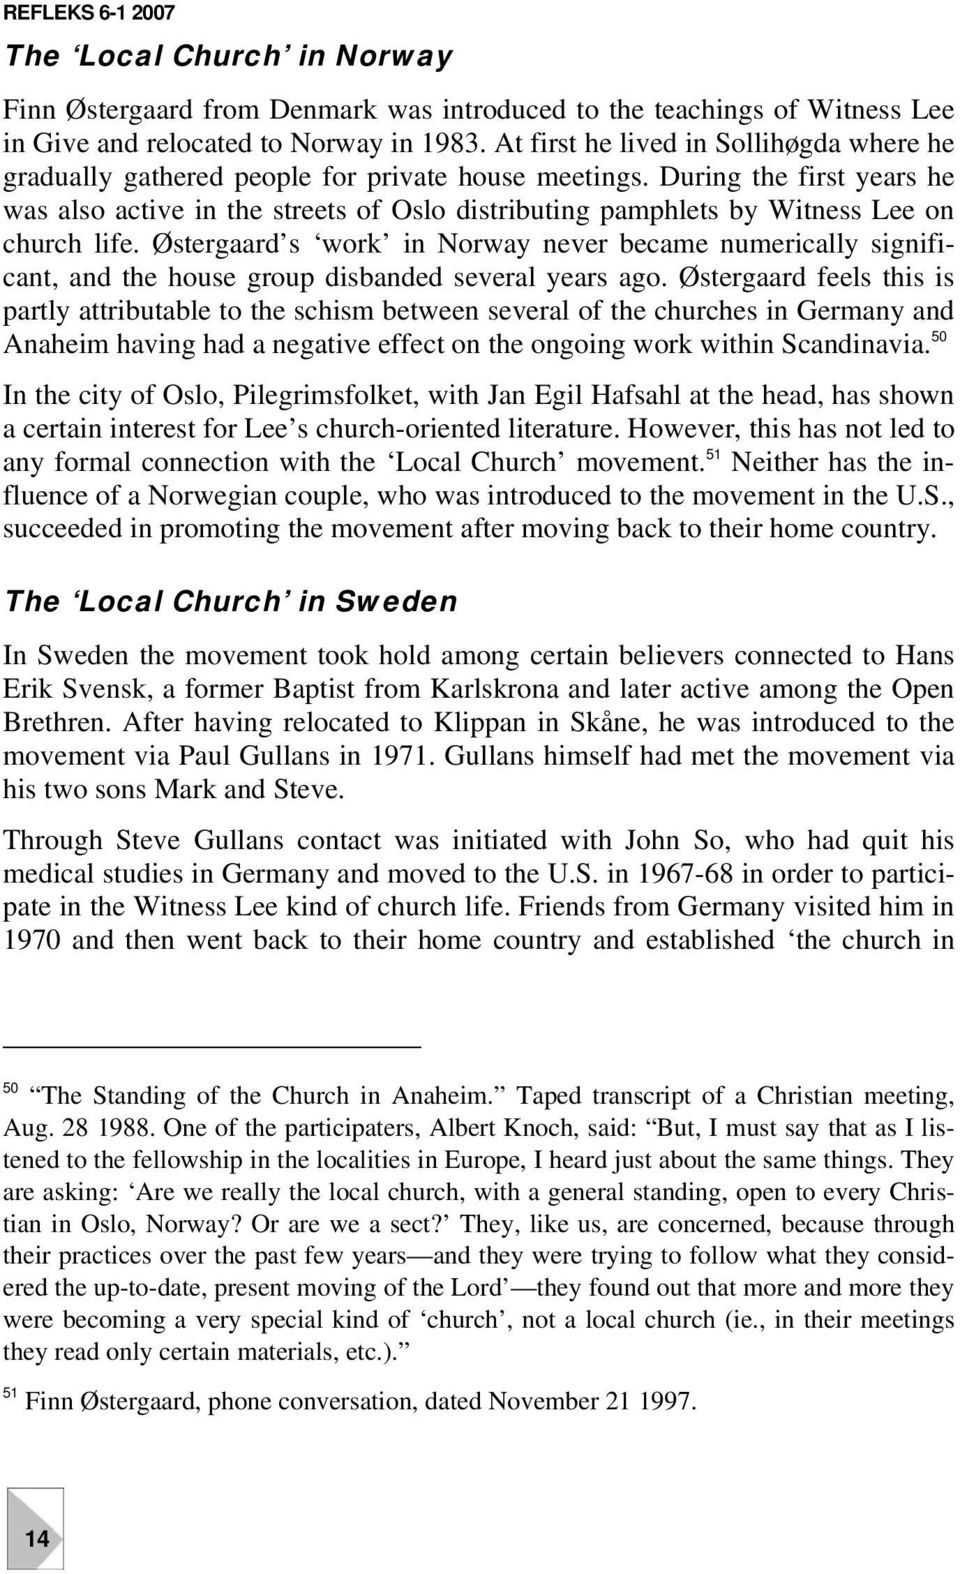 During the first years he was also active in the streets of Oslo distributing pamphlets by Witness Lee on church life.